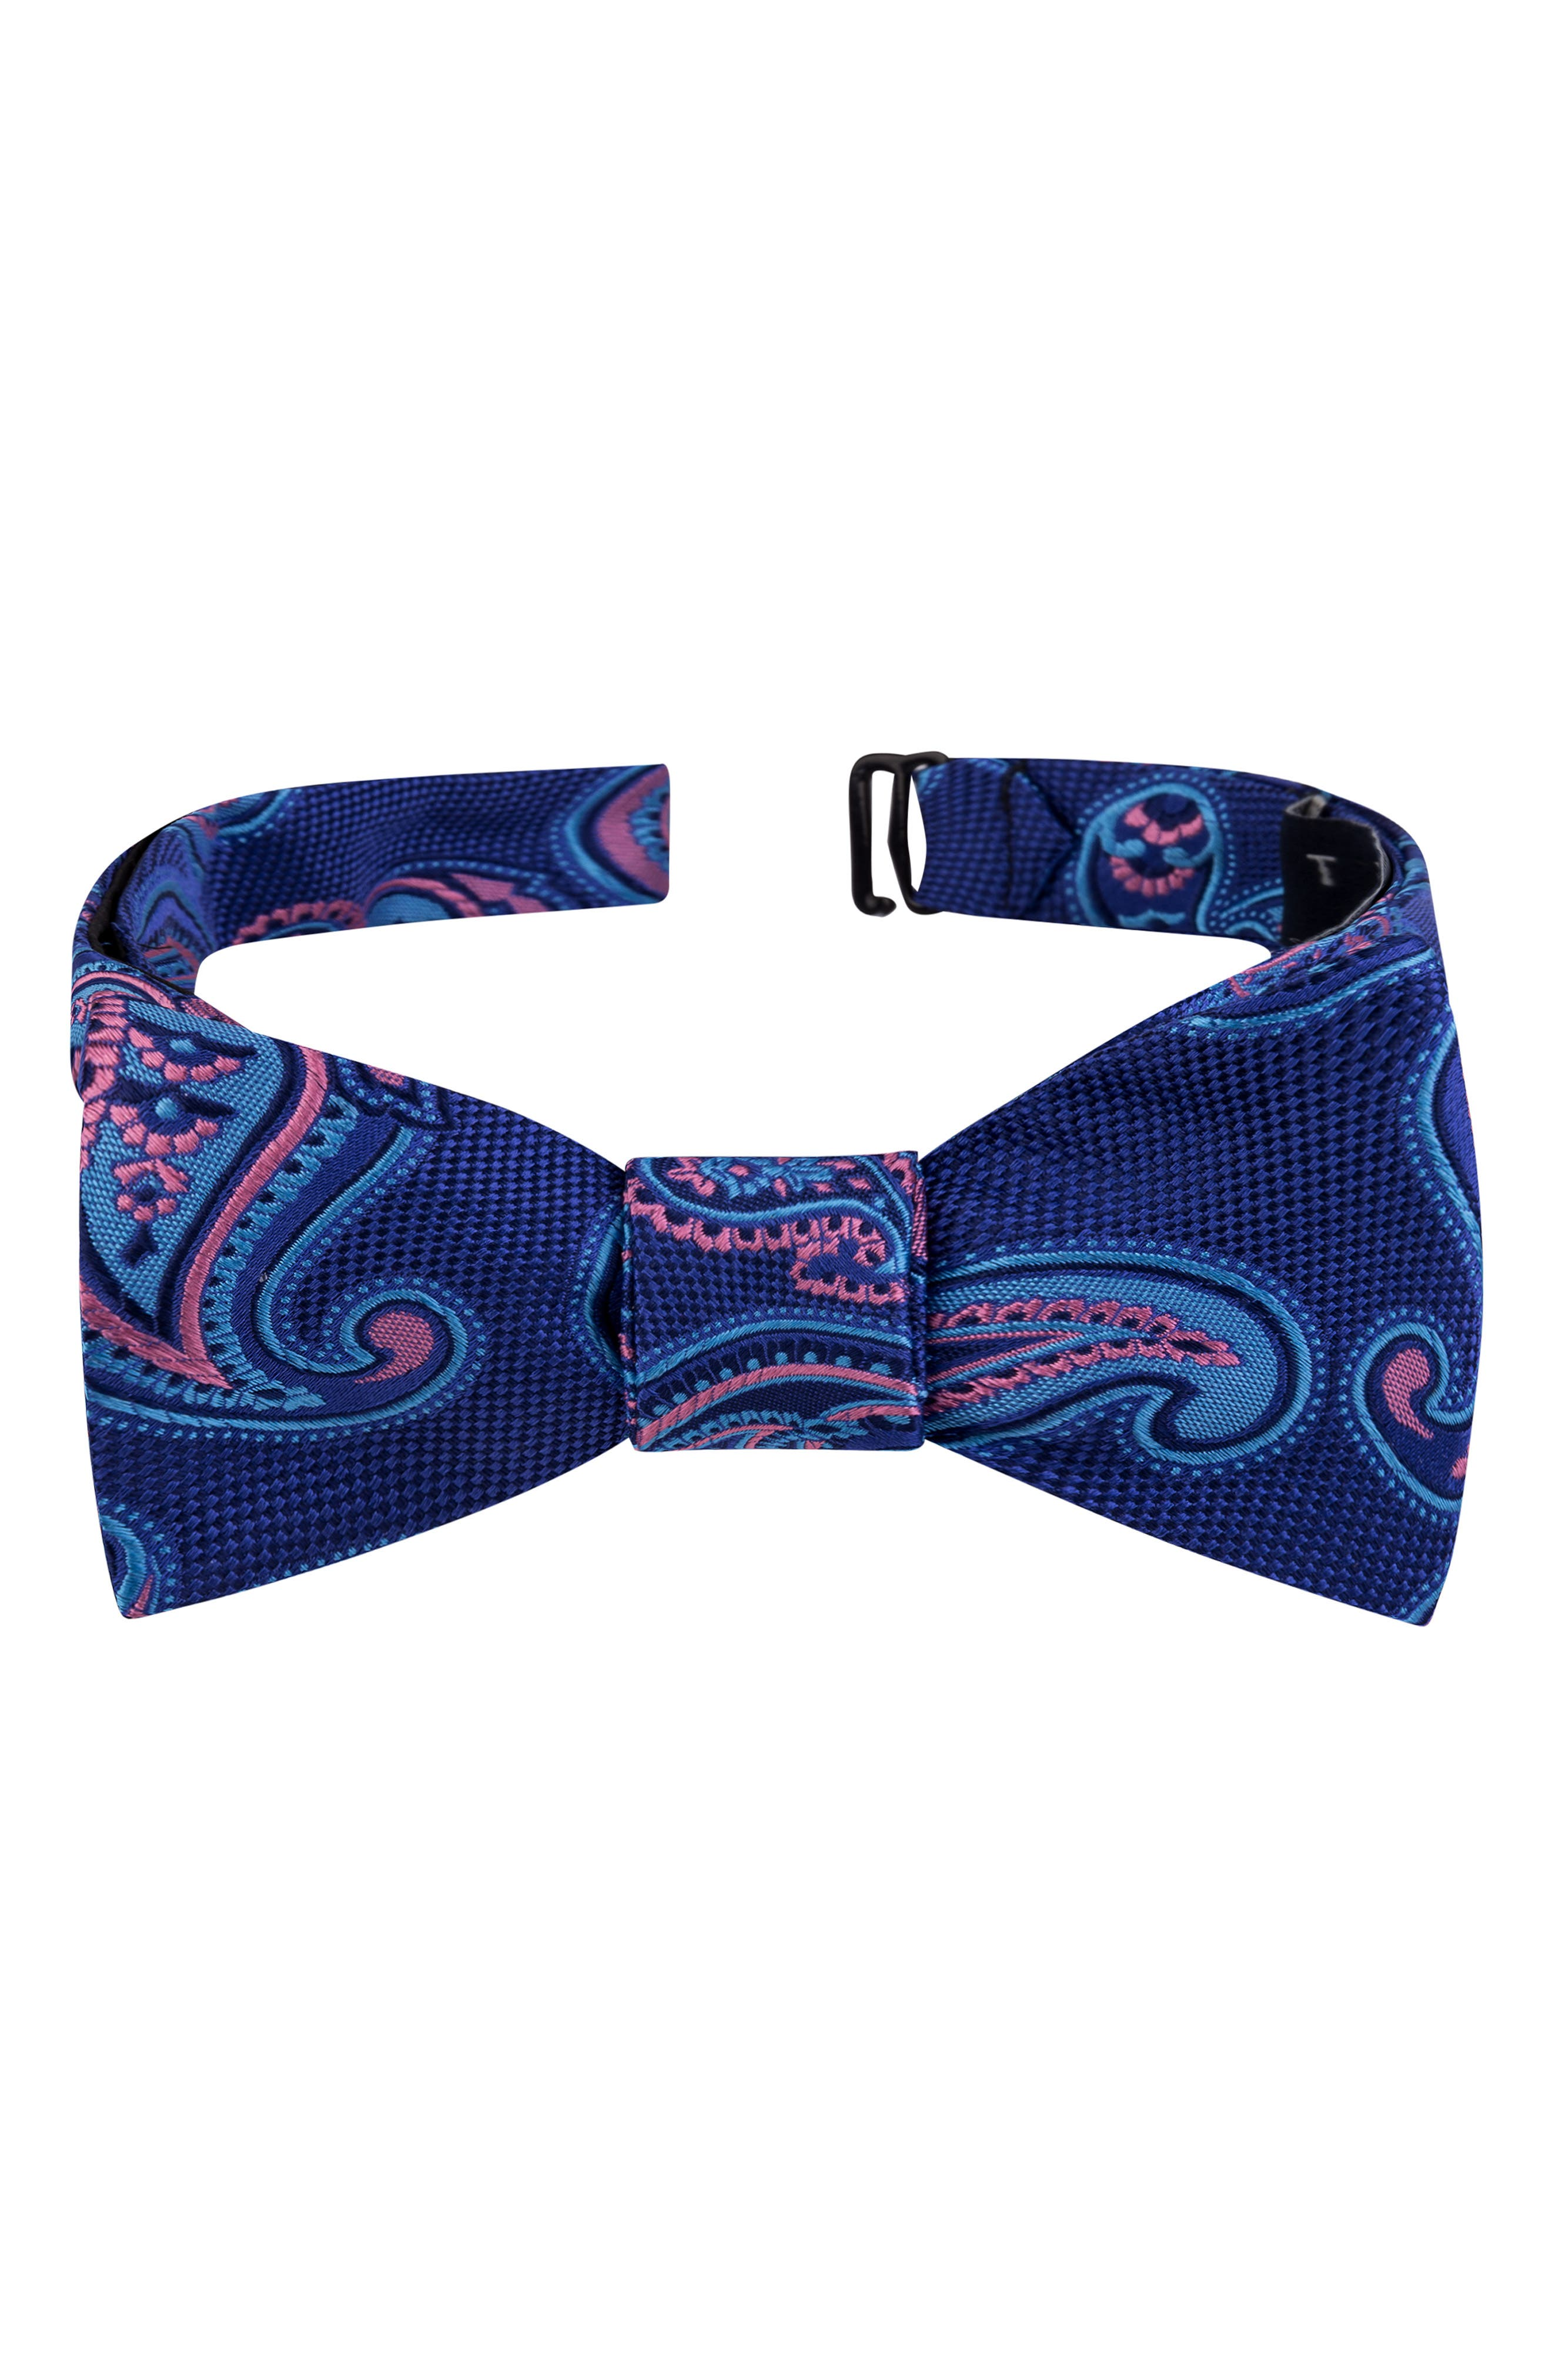 TED BAKER LONDON Twin Pine Silk Bow Tie, Main, color, BLUE